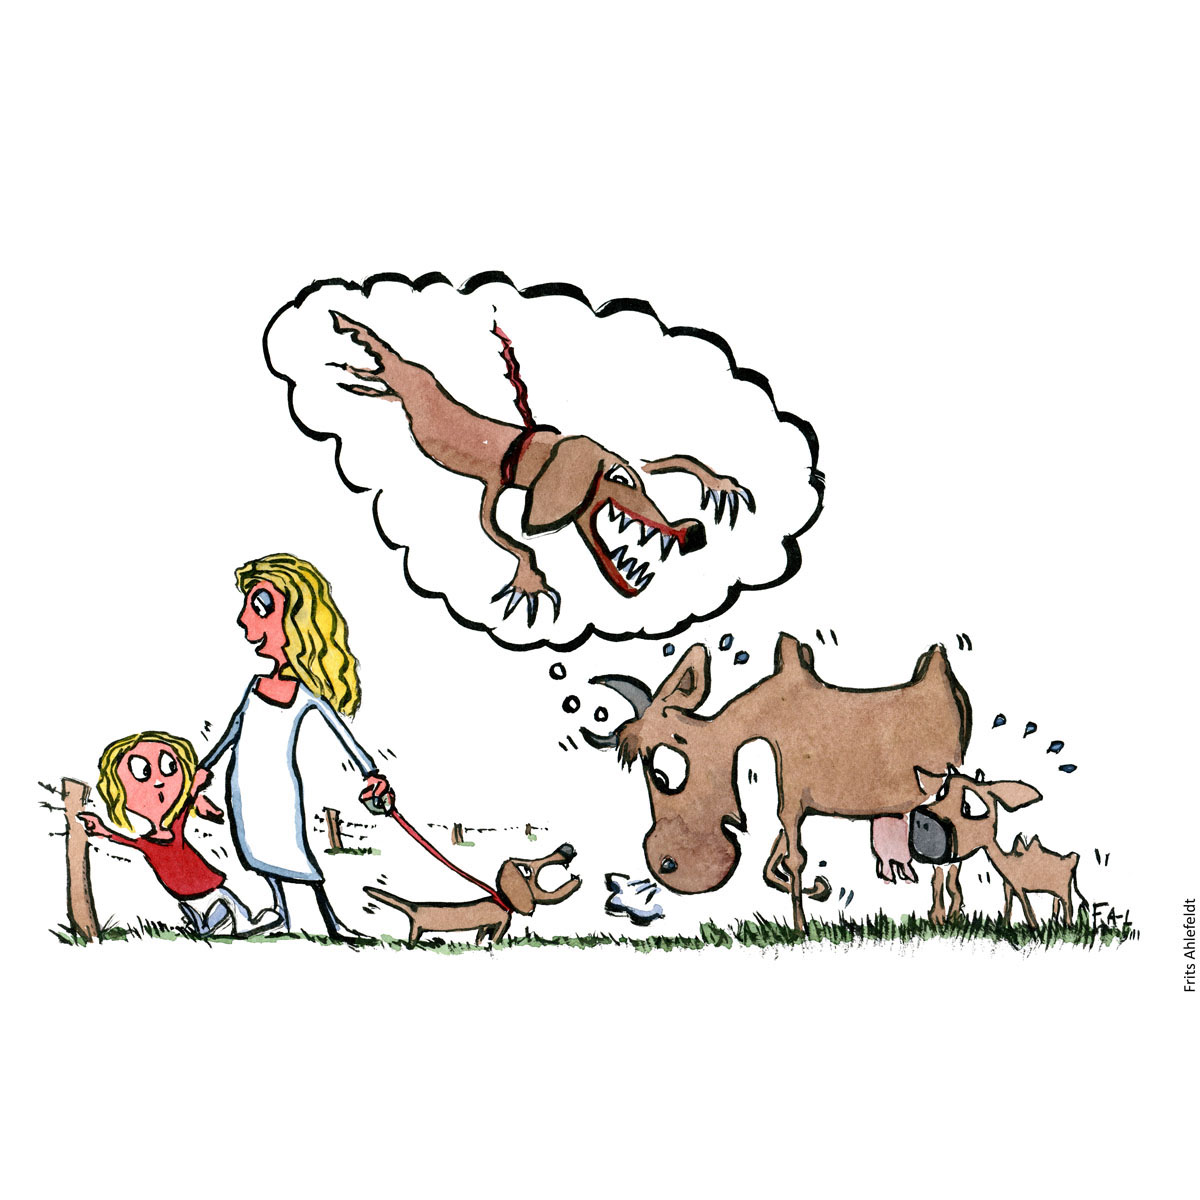 Drawing of a cow looking at a dog, seeing a predator. how cows see dogs. Illustration handmade by Frits Ahlefeldt